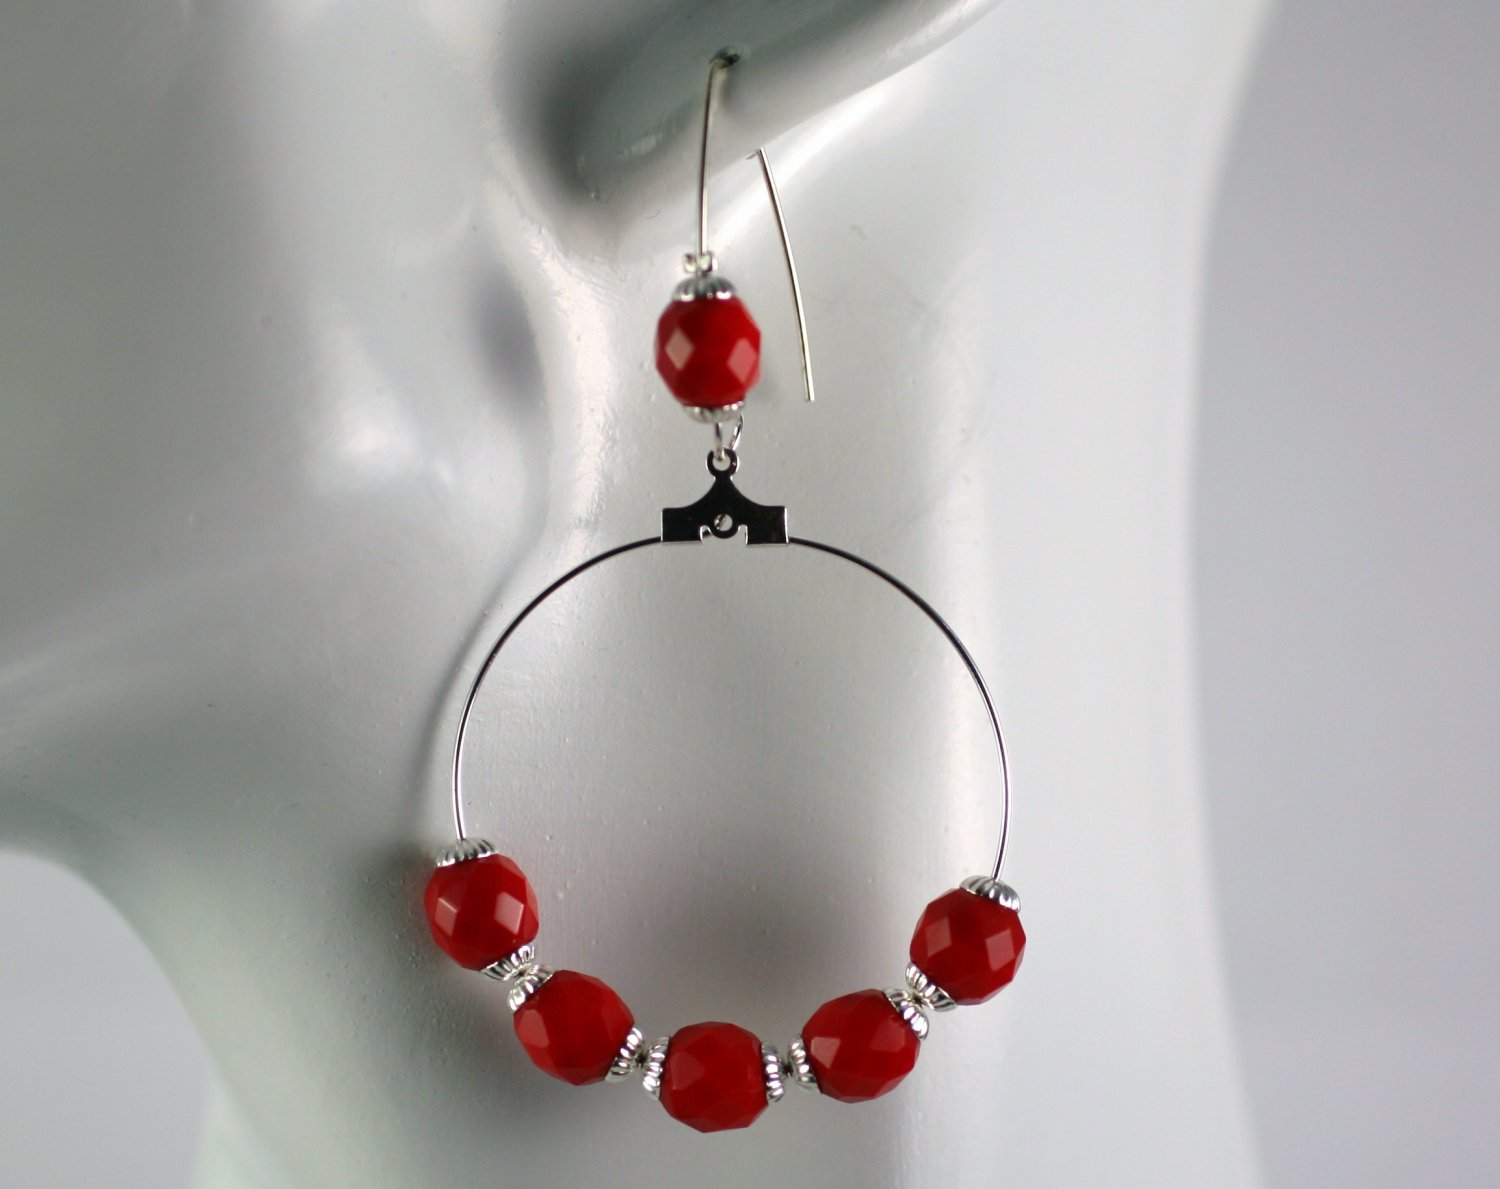 Silver Hoop Earrings with Red Glass Vintage Beads 1.5 in.  Handcrafted Jewelry